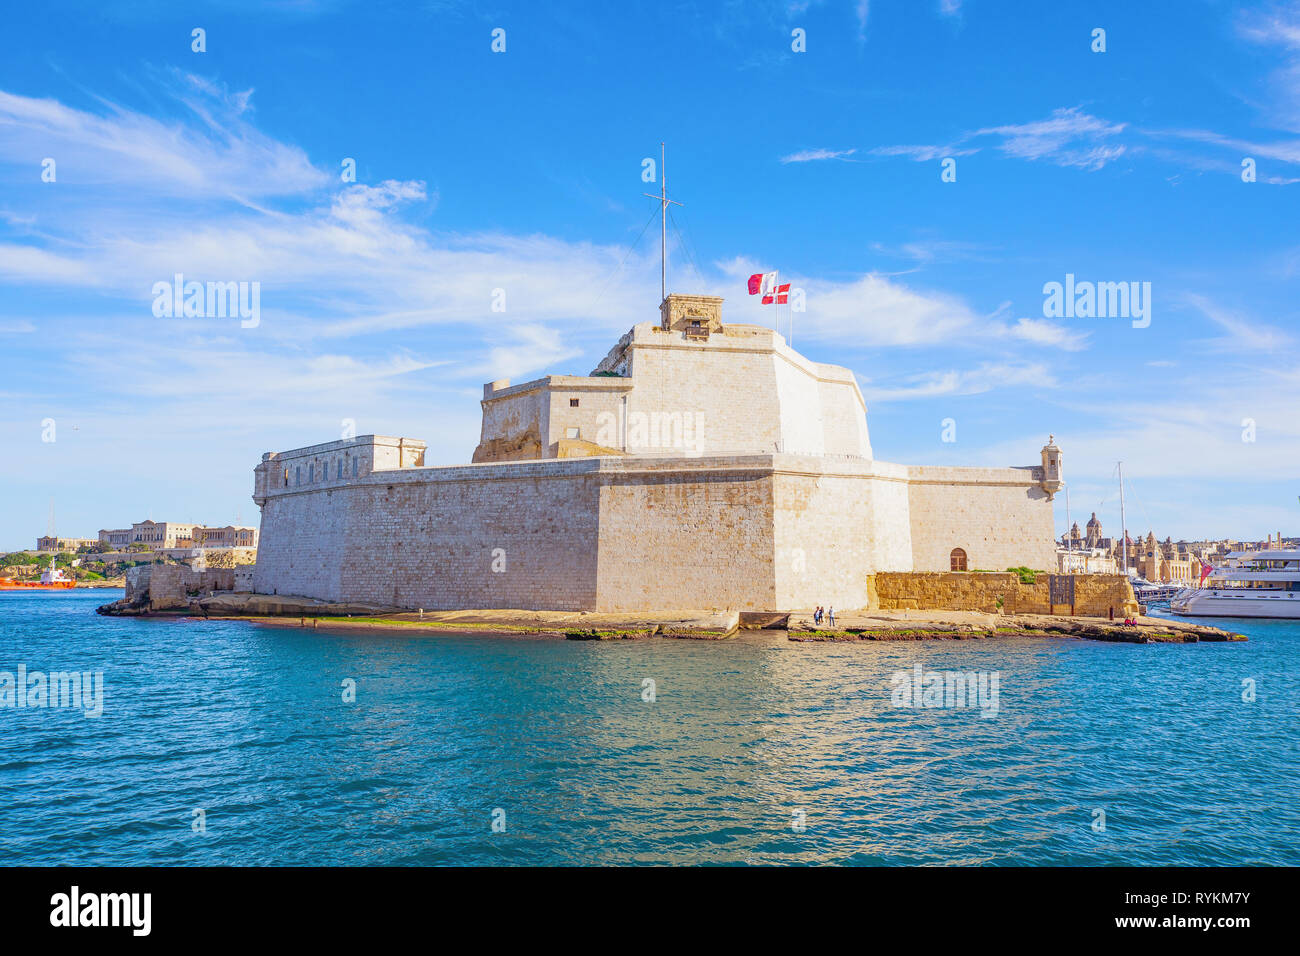 Malta, Valletta, the St Angelo fort seen from the sea - Stock Image